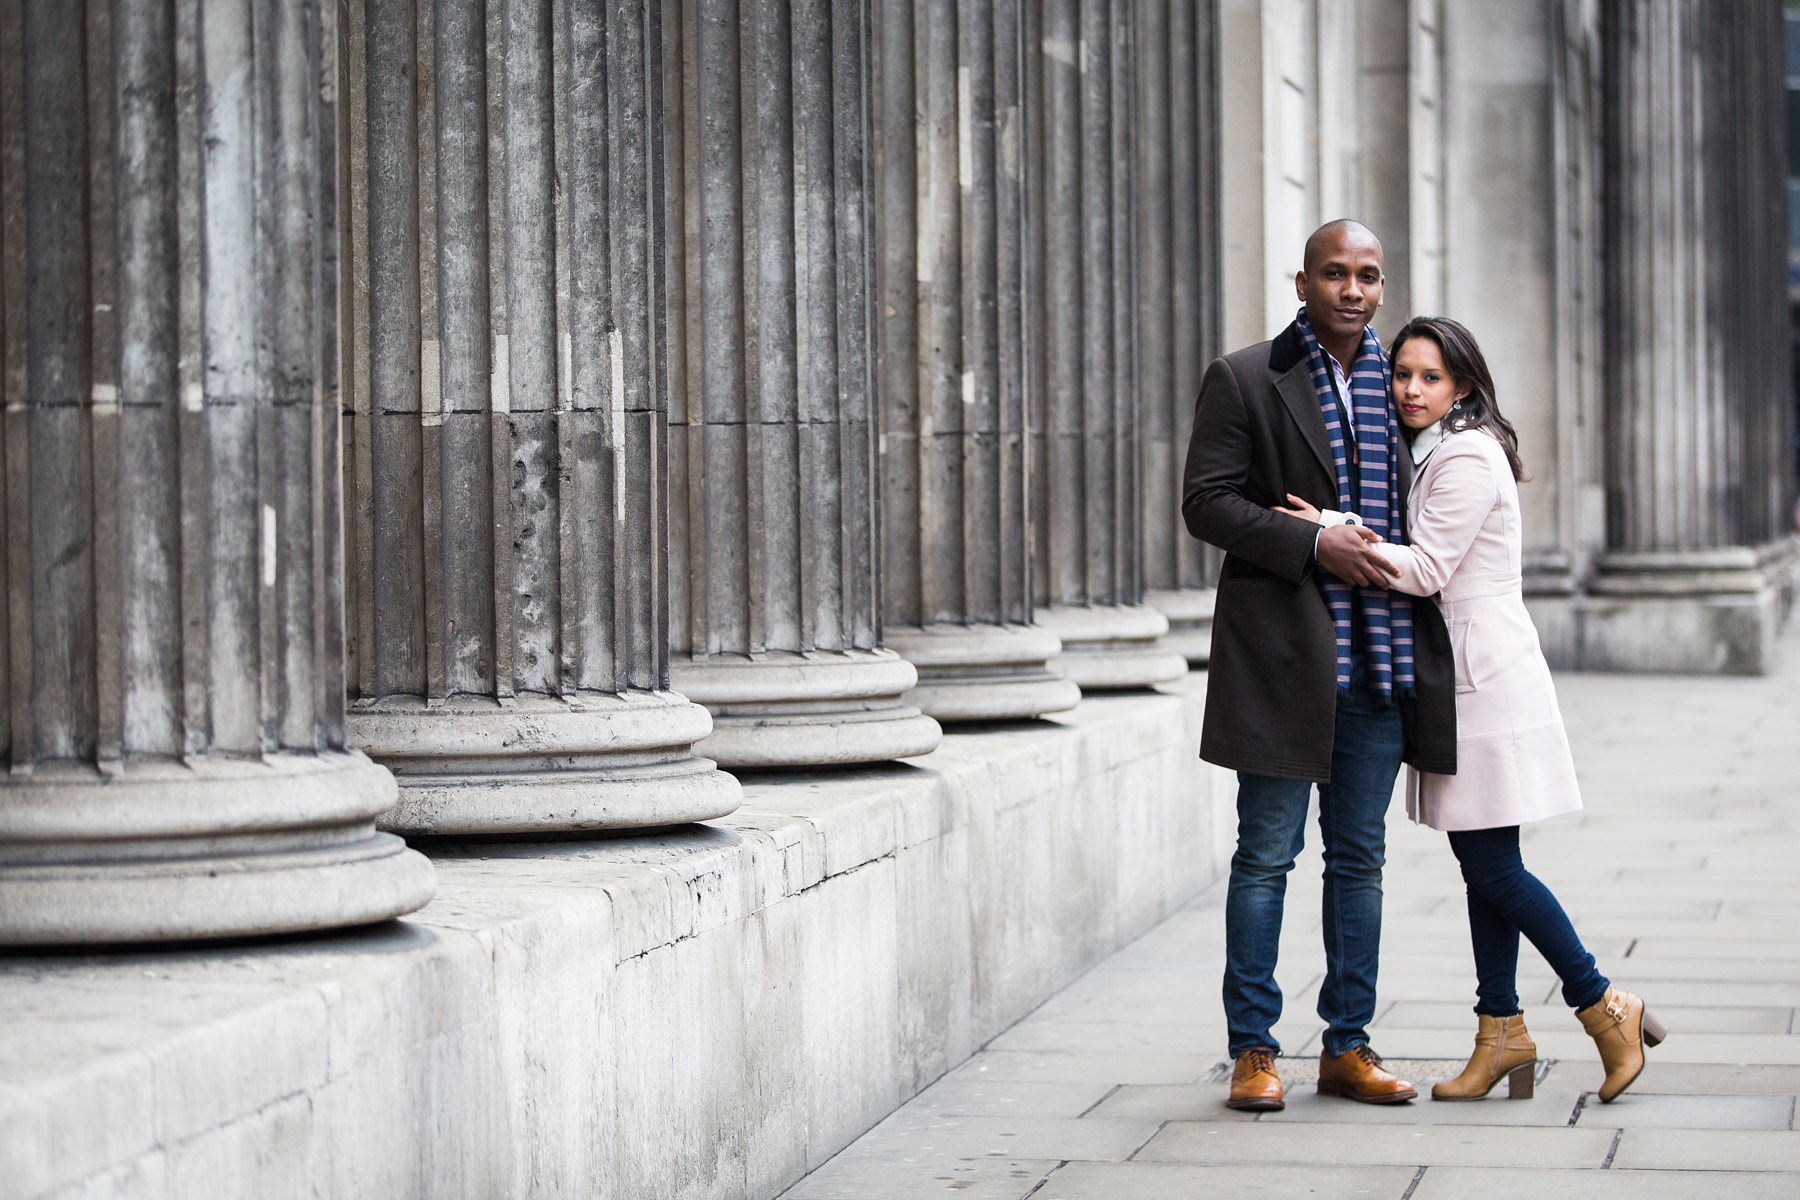 Couple portrait, engagement, The city, London photo portrait